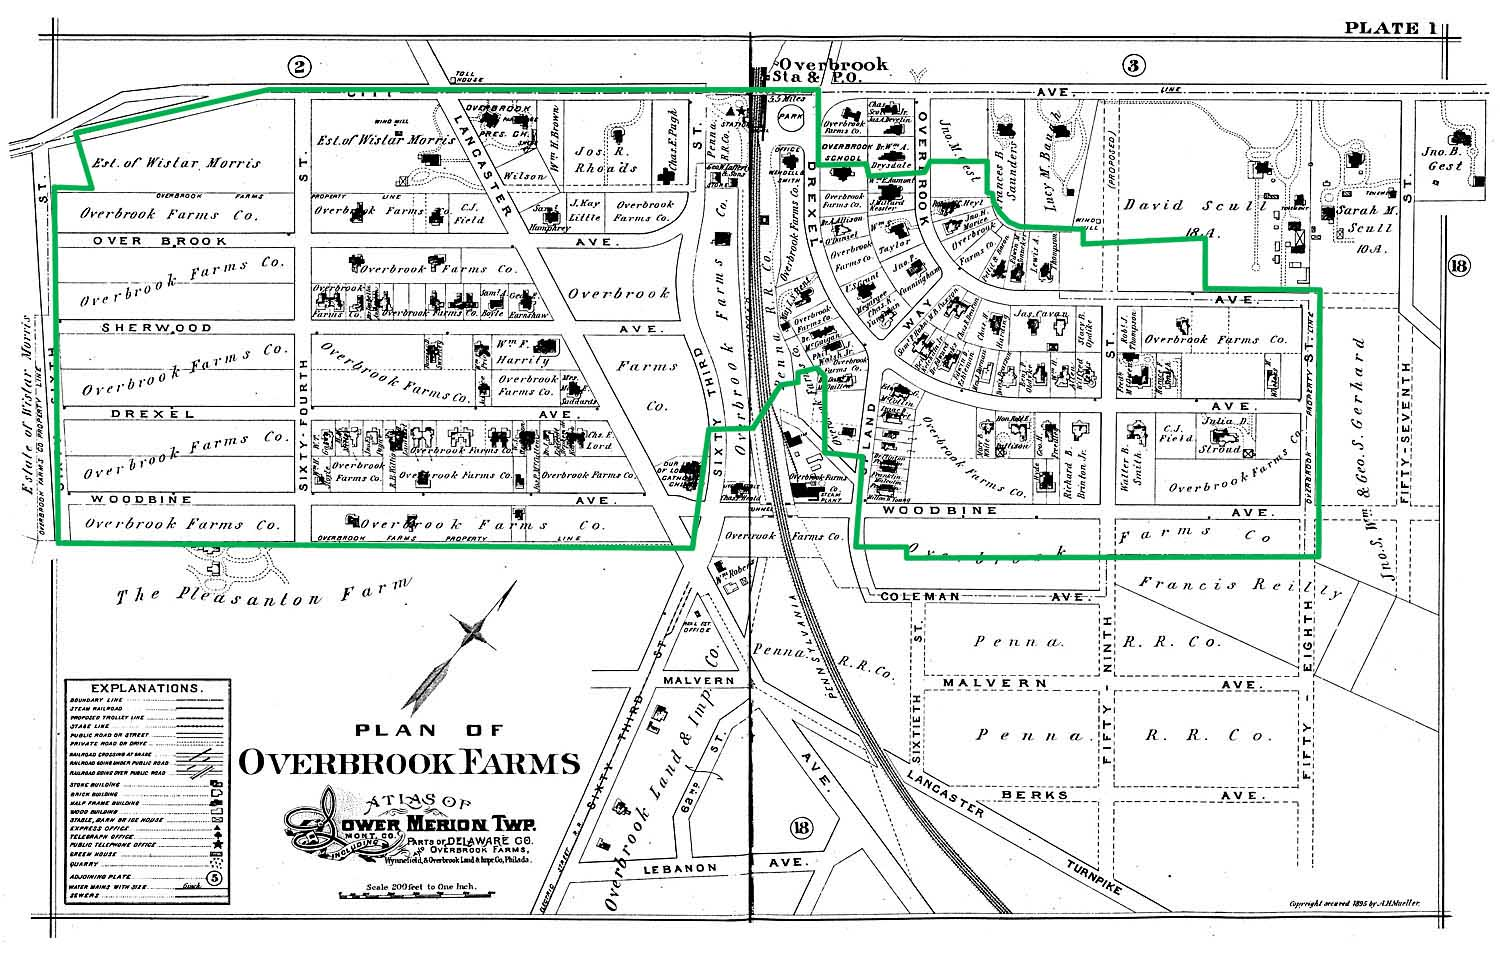 1896 Plan of Overbrook Farms with rough outline of proposed historic district boundaries overlaid.